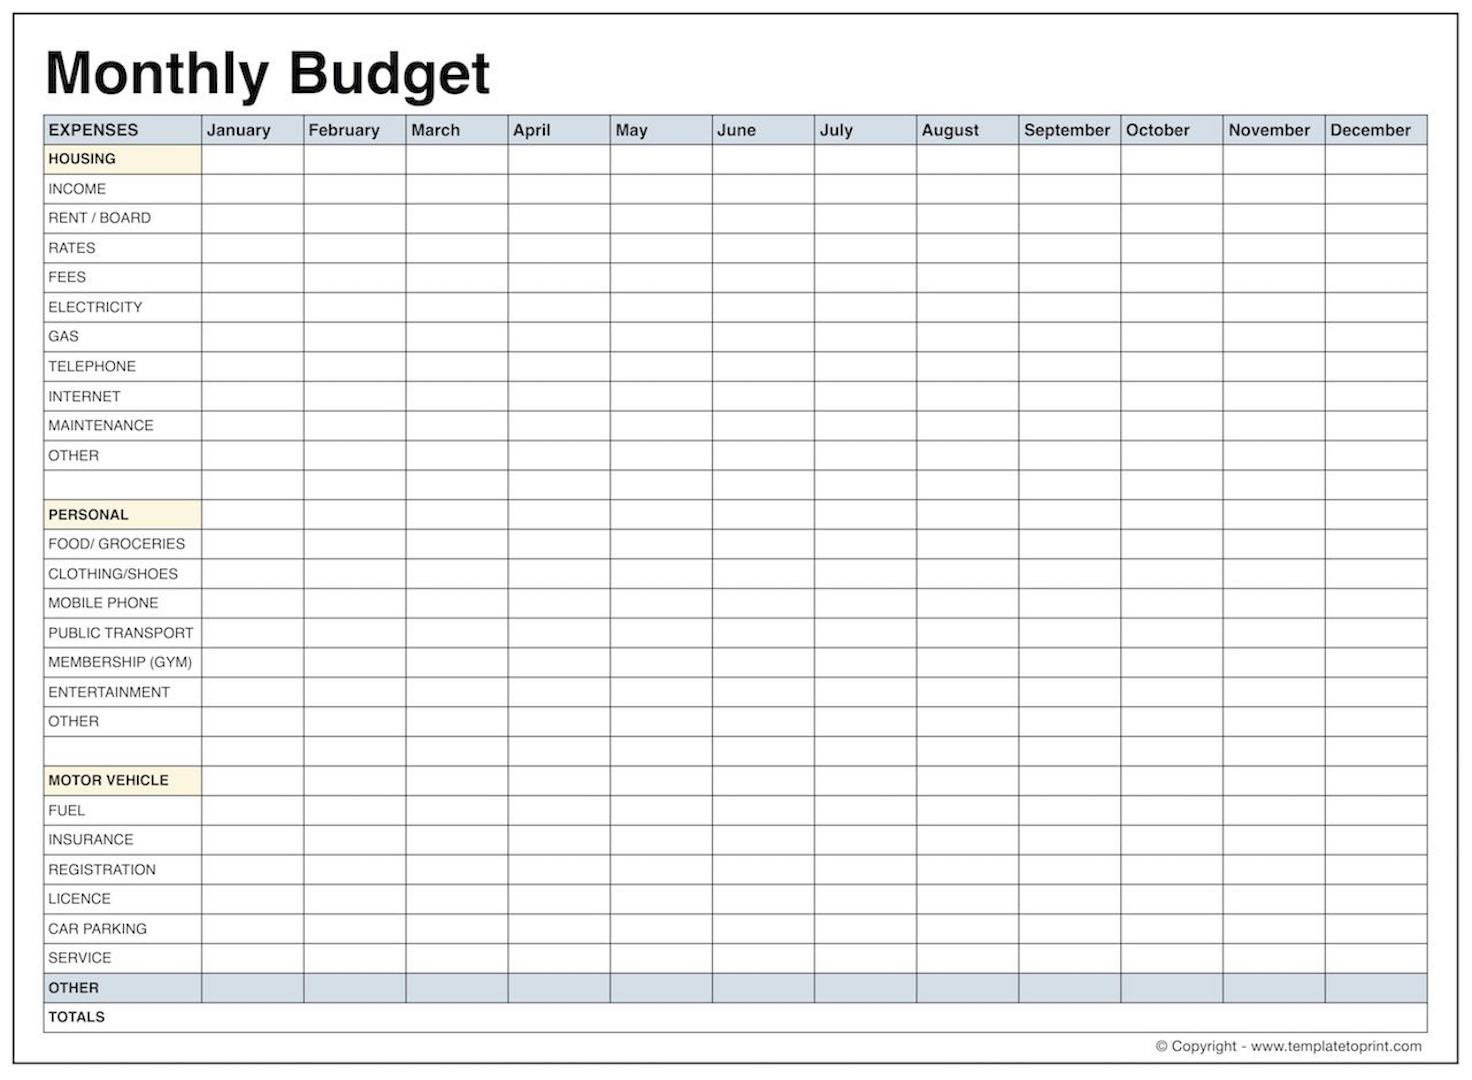 Monthly Cost Spreadsheet With Printable Budget Worksheet